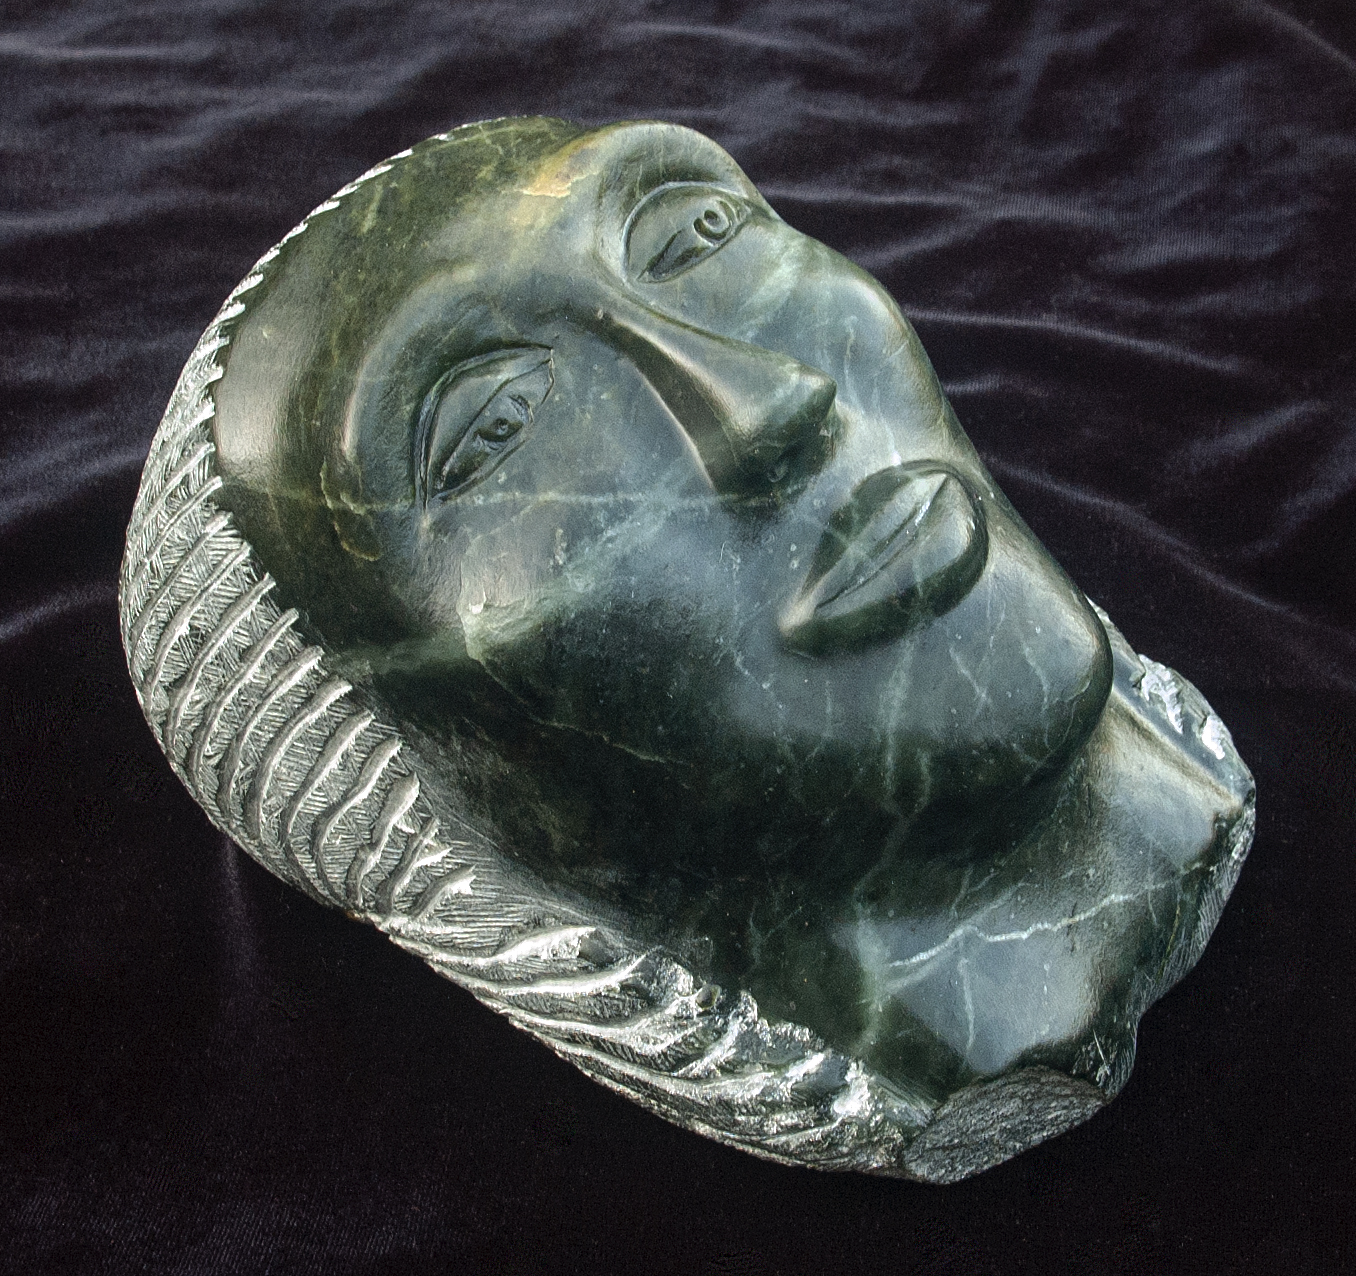 Face soapstone 2019 8x6x5in